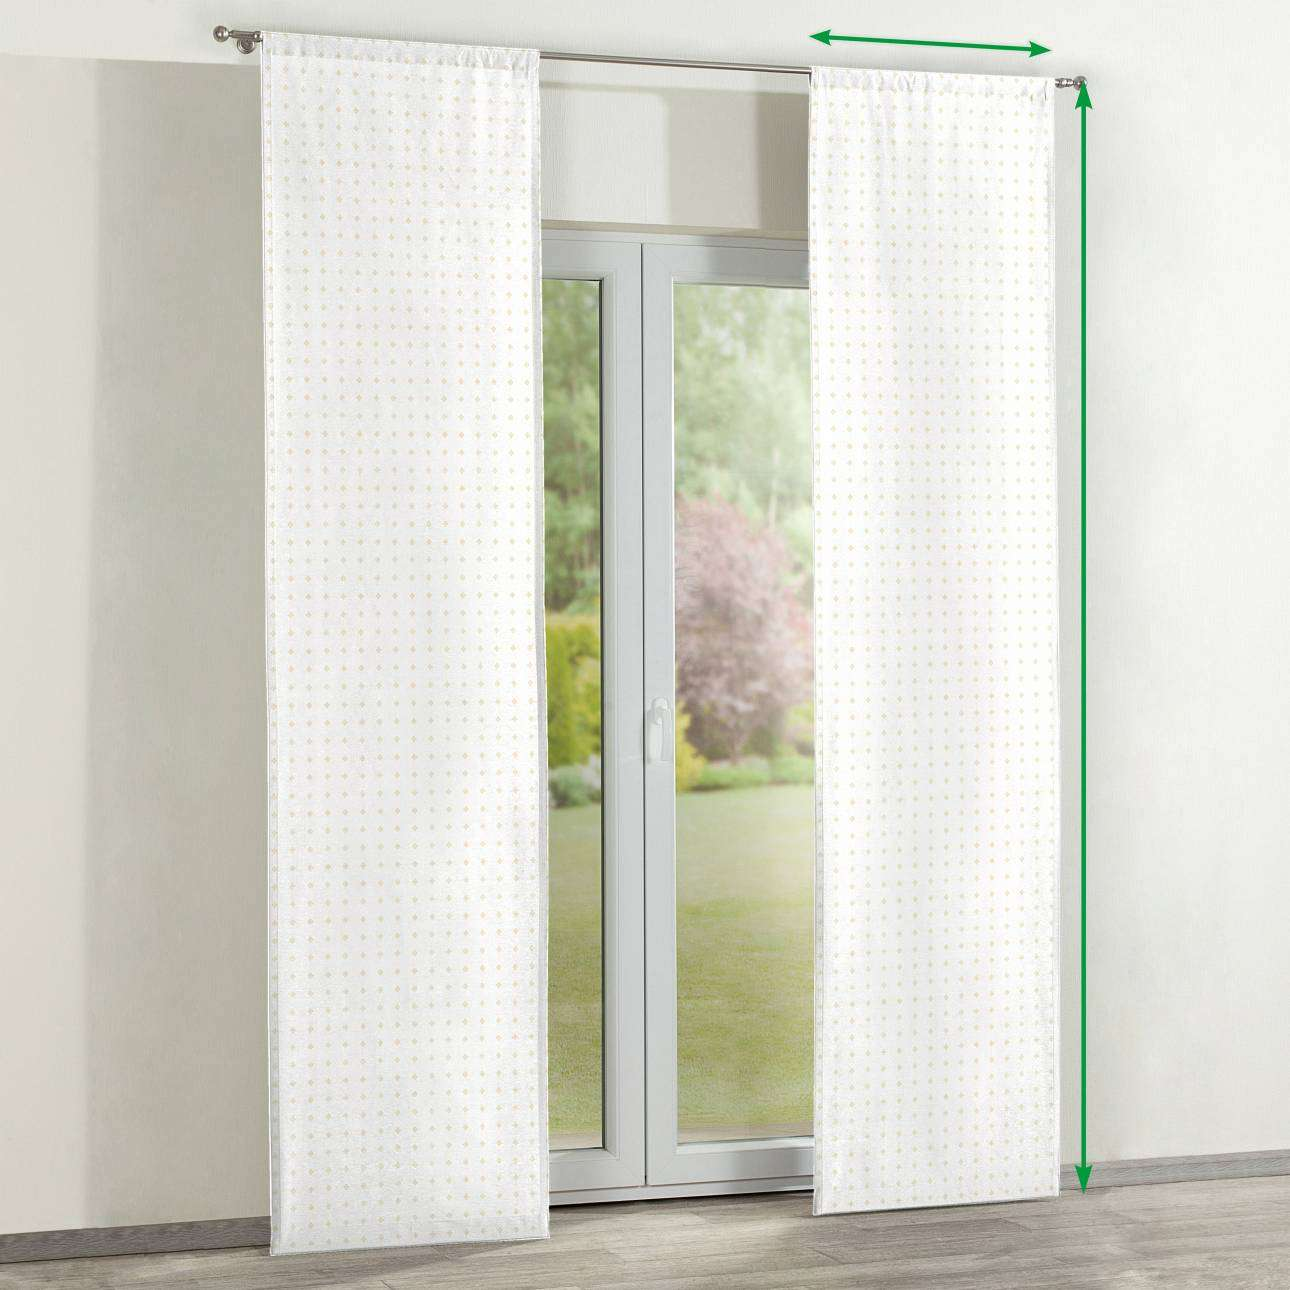 Slot panel curtains – Set of 2 in collection Arcana, fabric: 102-02